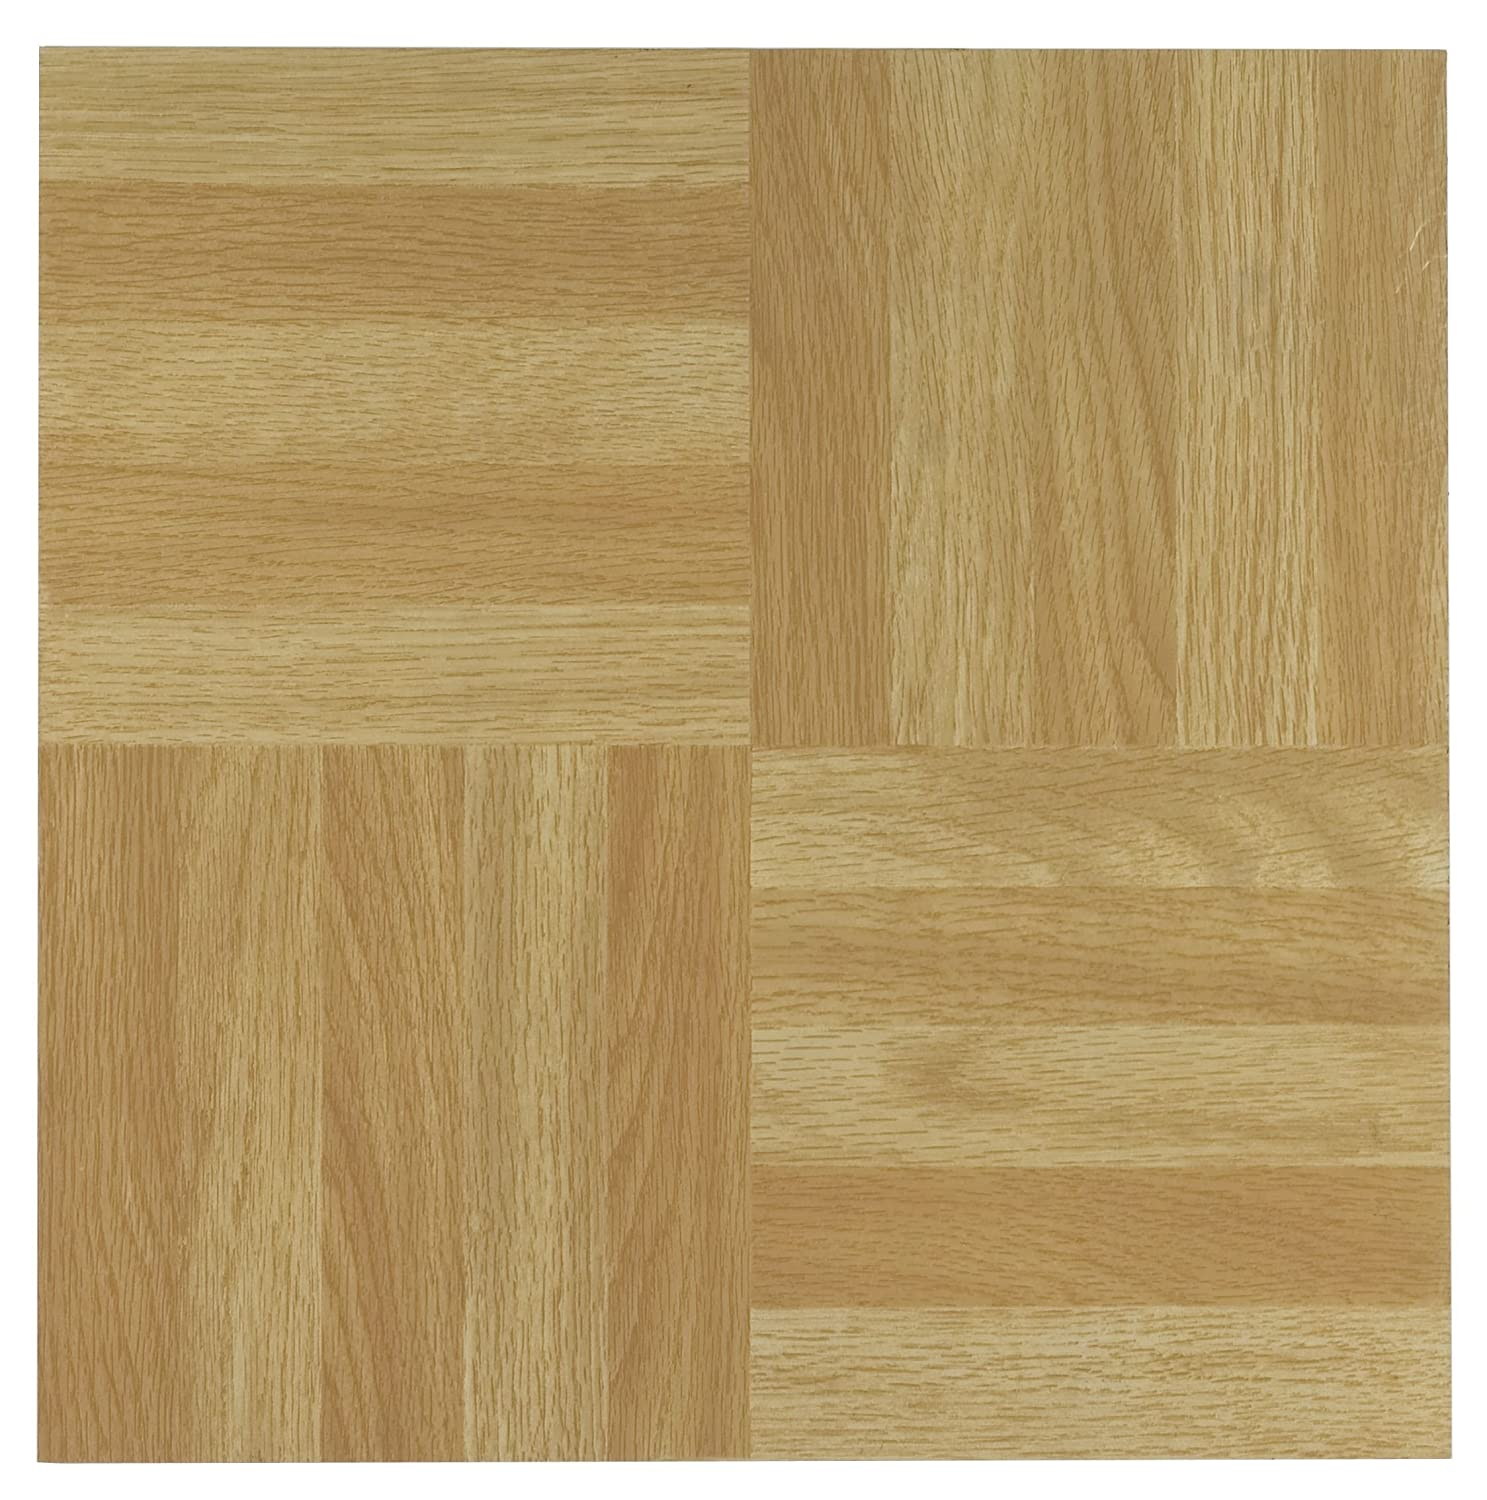 Achim home furnishings ftvwd20420 nexus 12 inch vinyl tile wood achim home furnishings ftvwd20420 nexus 12 inch vinyl tile wood four finger square parquet 20 pack vinyl floor coverings amazon doublecrazyfo Choice Image